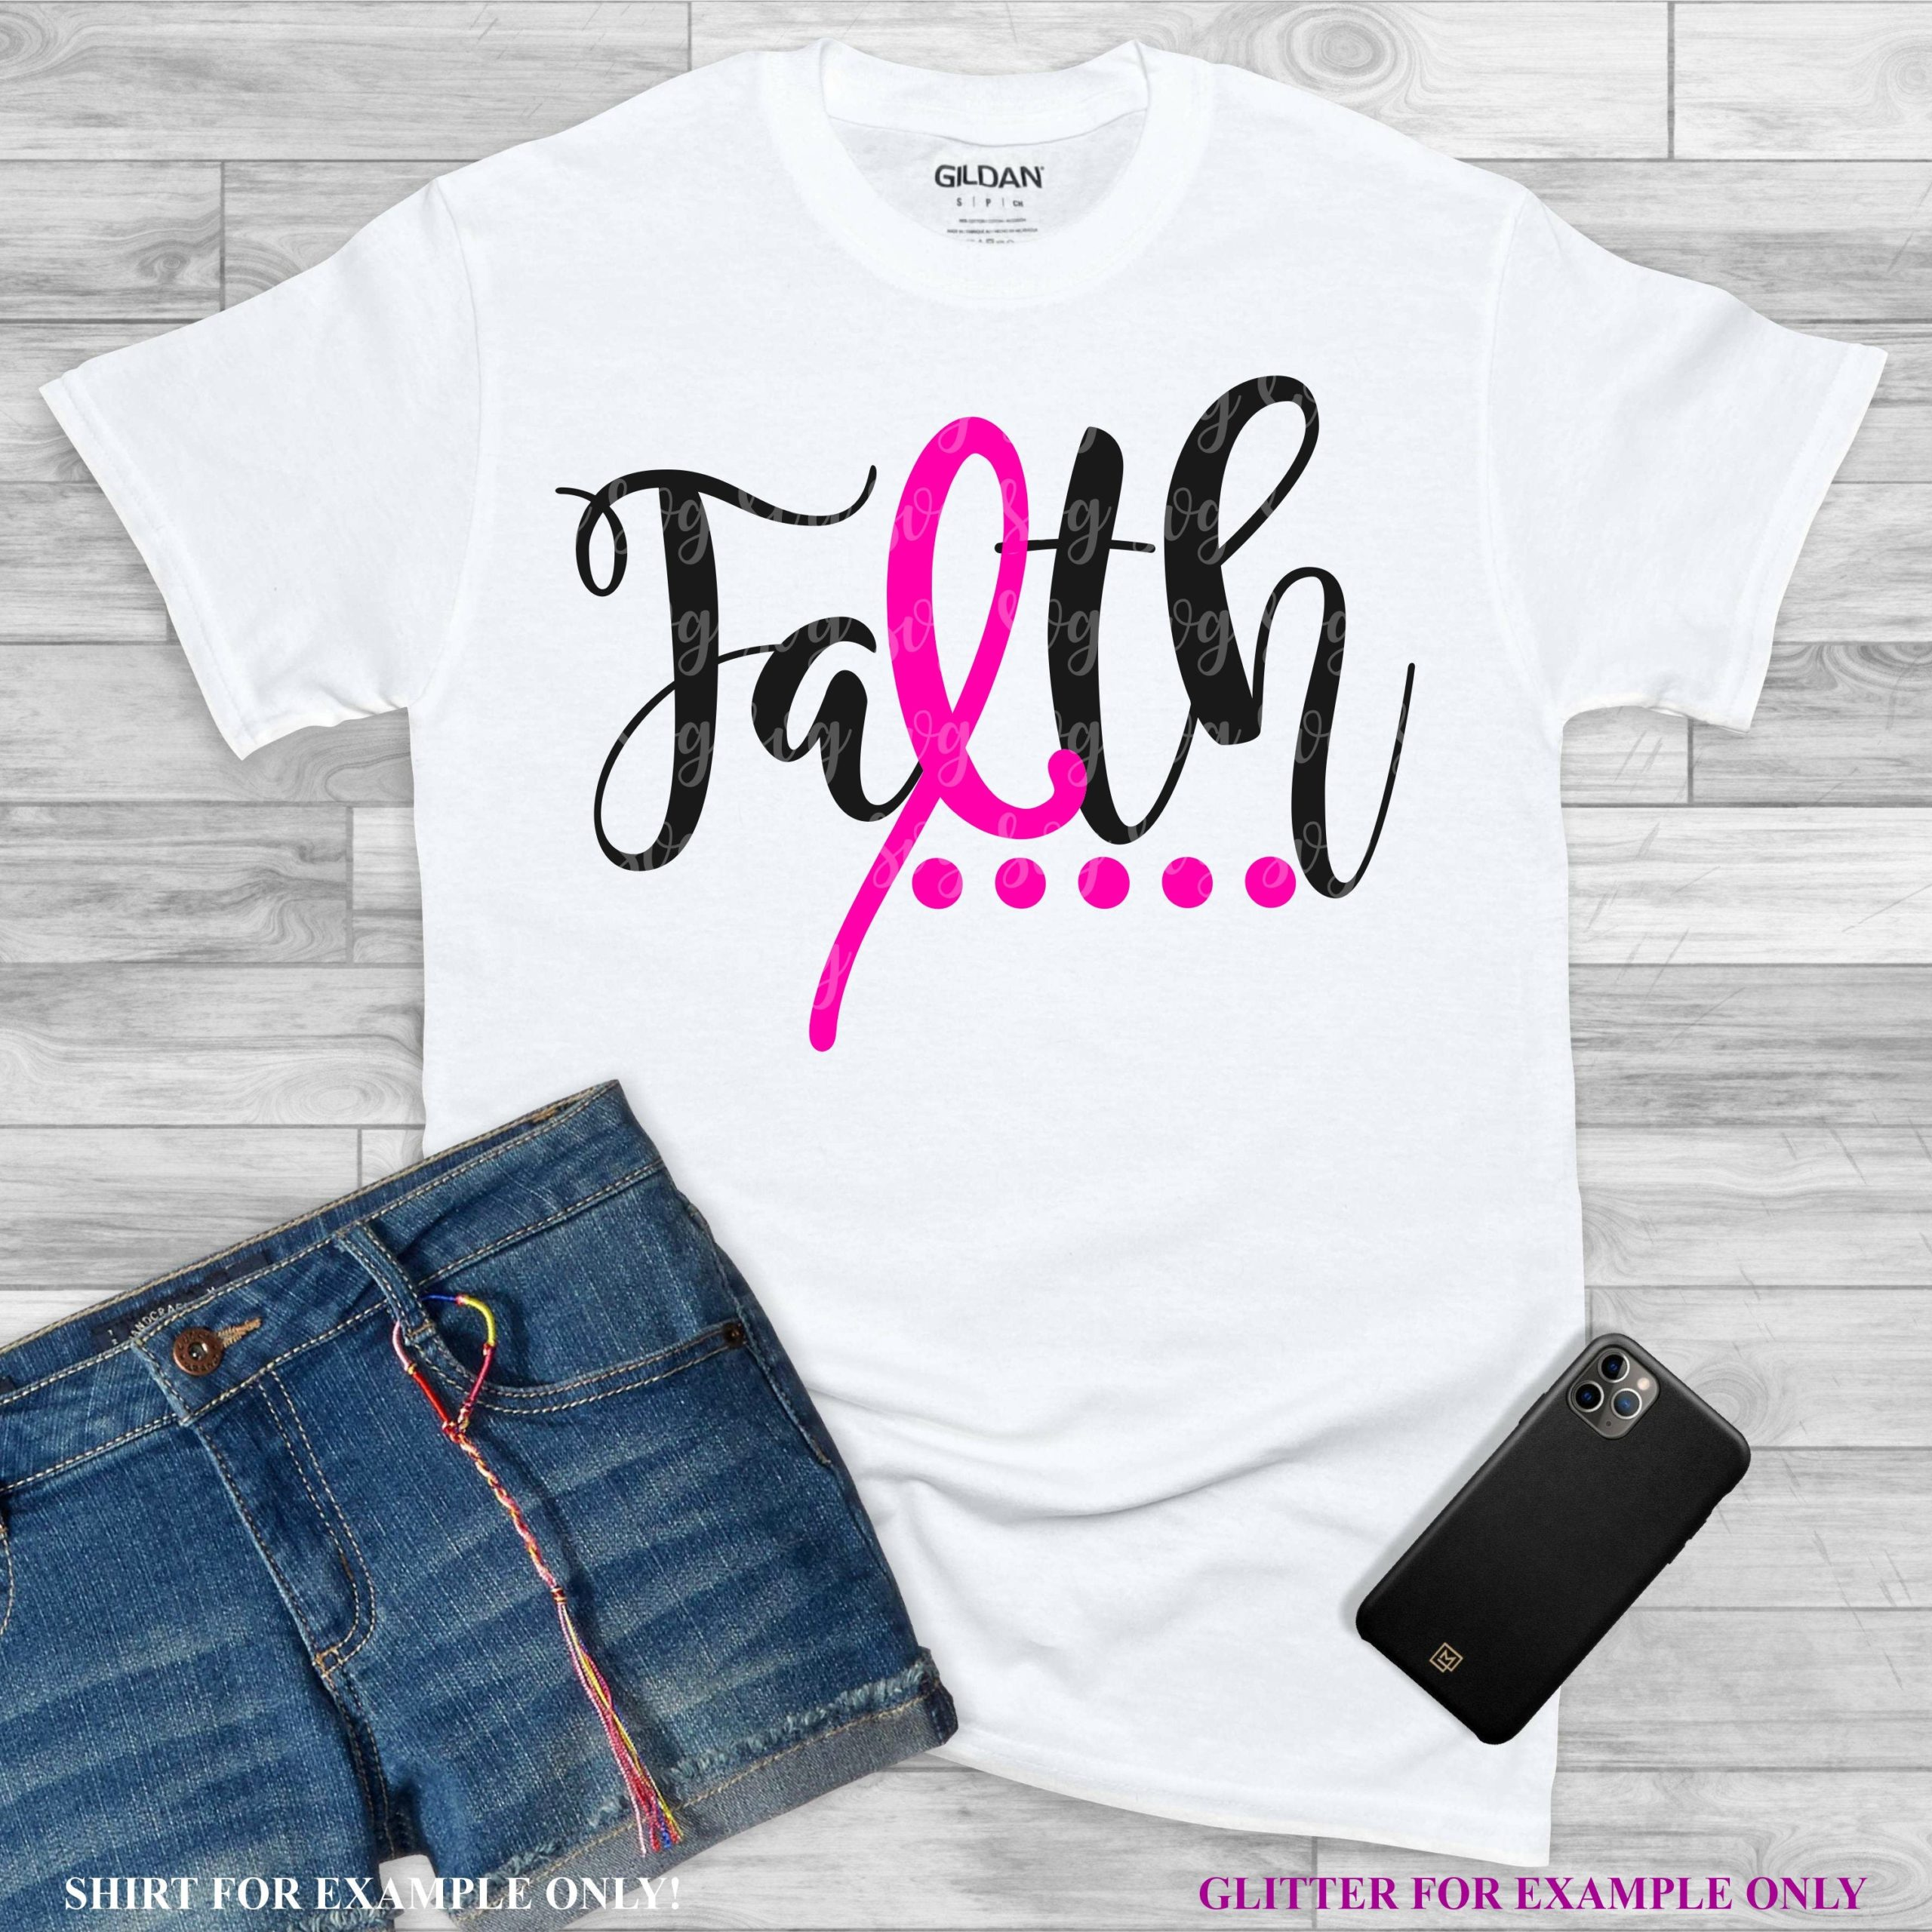 Faith-ribbon-svg-cancer-svg-faith-svg-awareness-svg-cancer-ribbon-svg-tshirt-svg-survivor-svg-svg-for-cricut-silhouette-cut-file-5ef79113